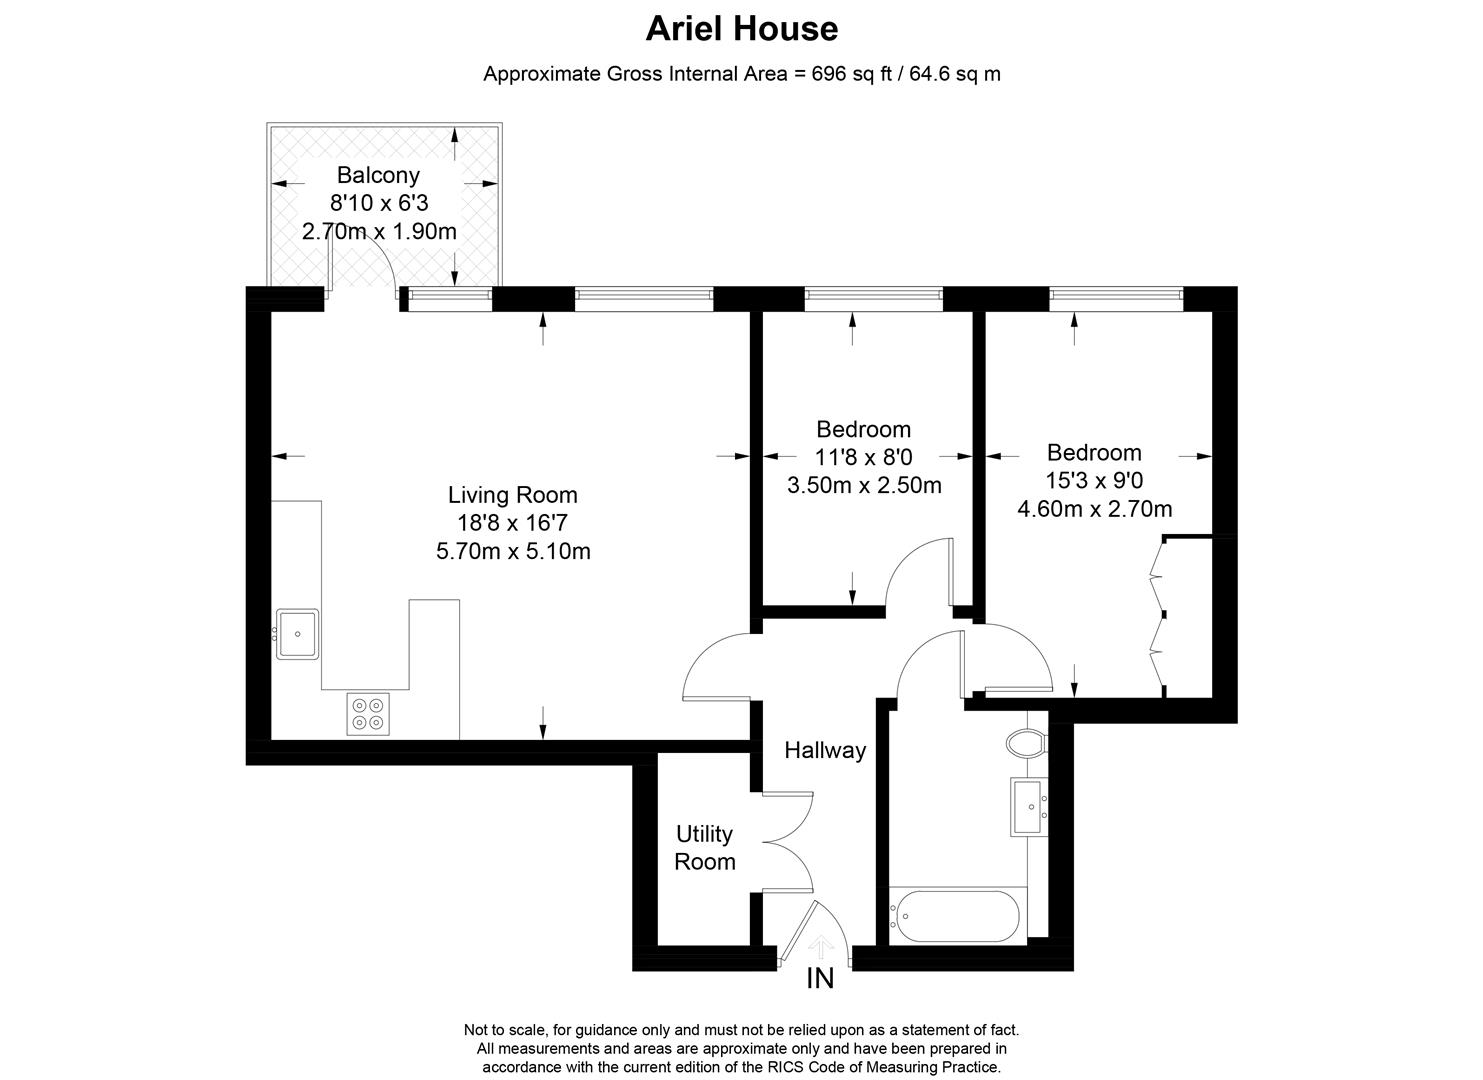 Ariel House, 144 Vaughan Way, Wapping, London E1W - Garton Jones on christmas story house floor plan, gatsby house floor plan, barbie house floor plan, incredibles house floor plan, frodo baggins house floor plan,